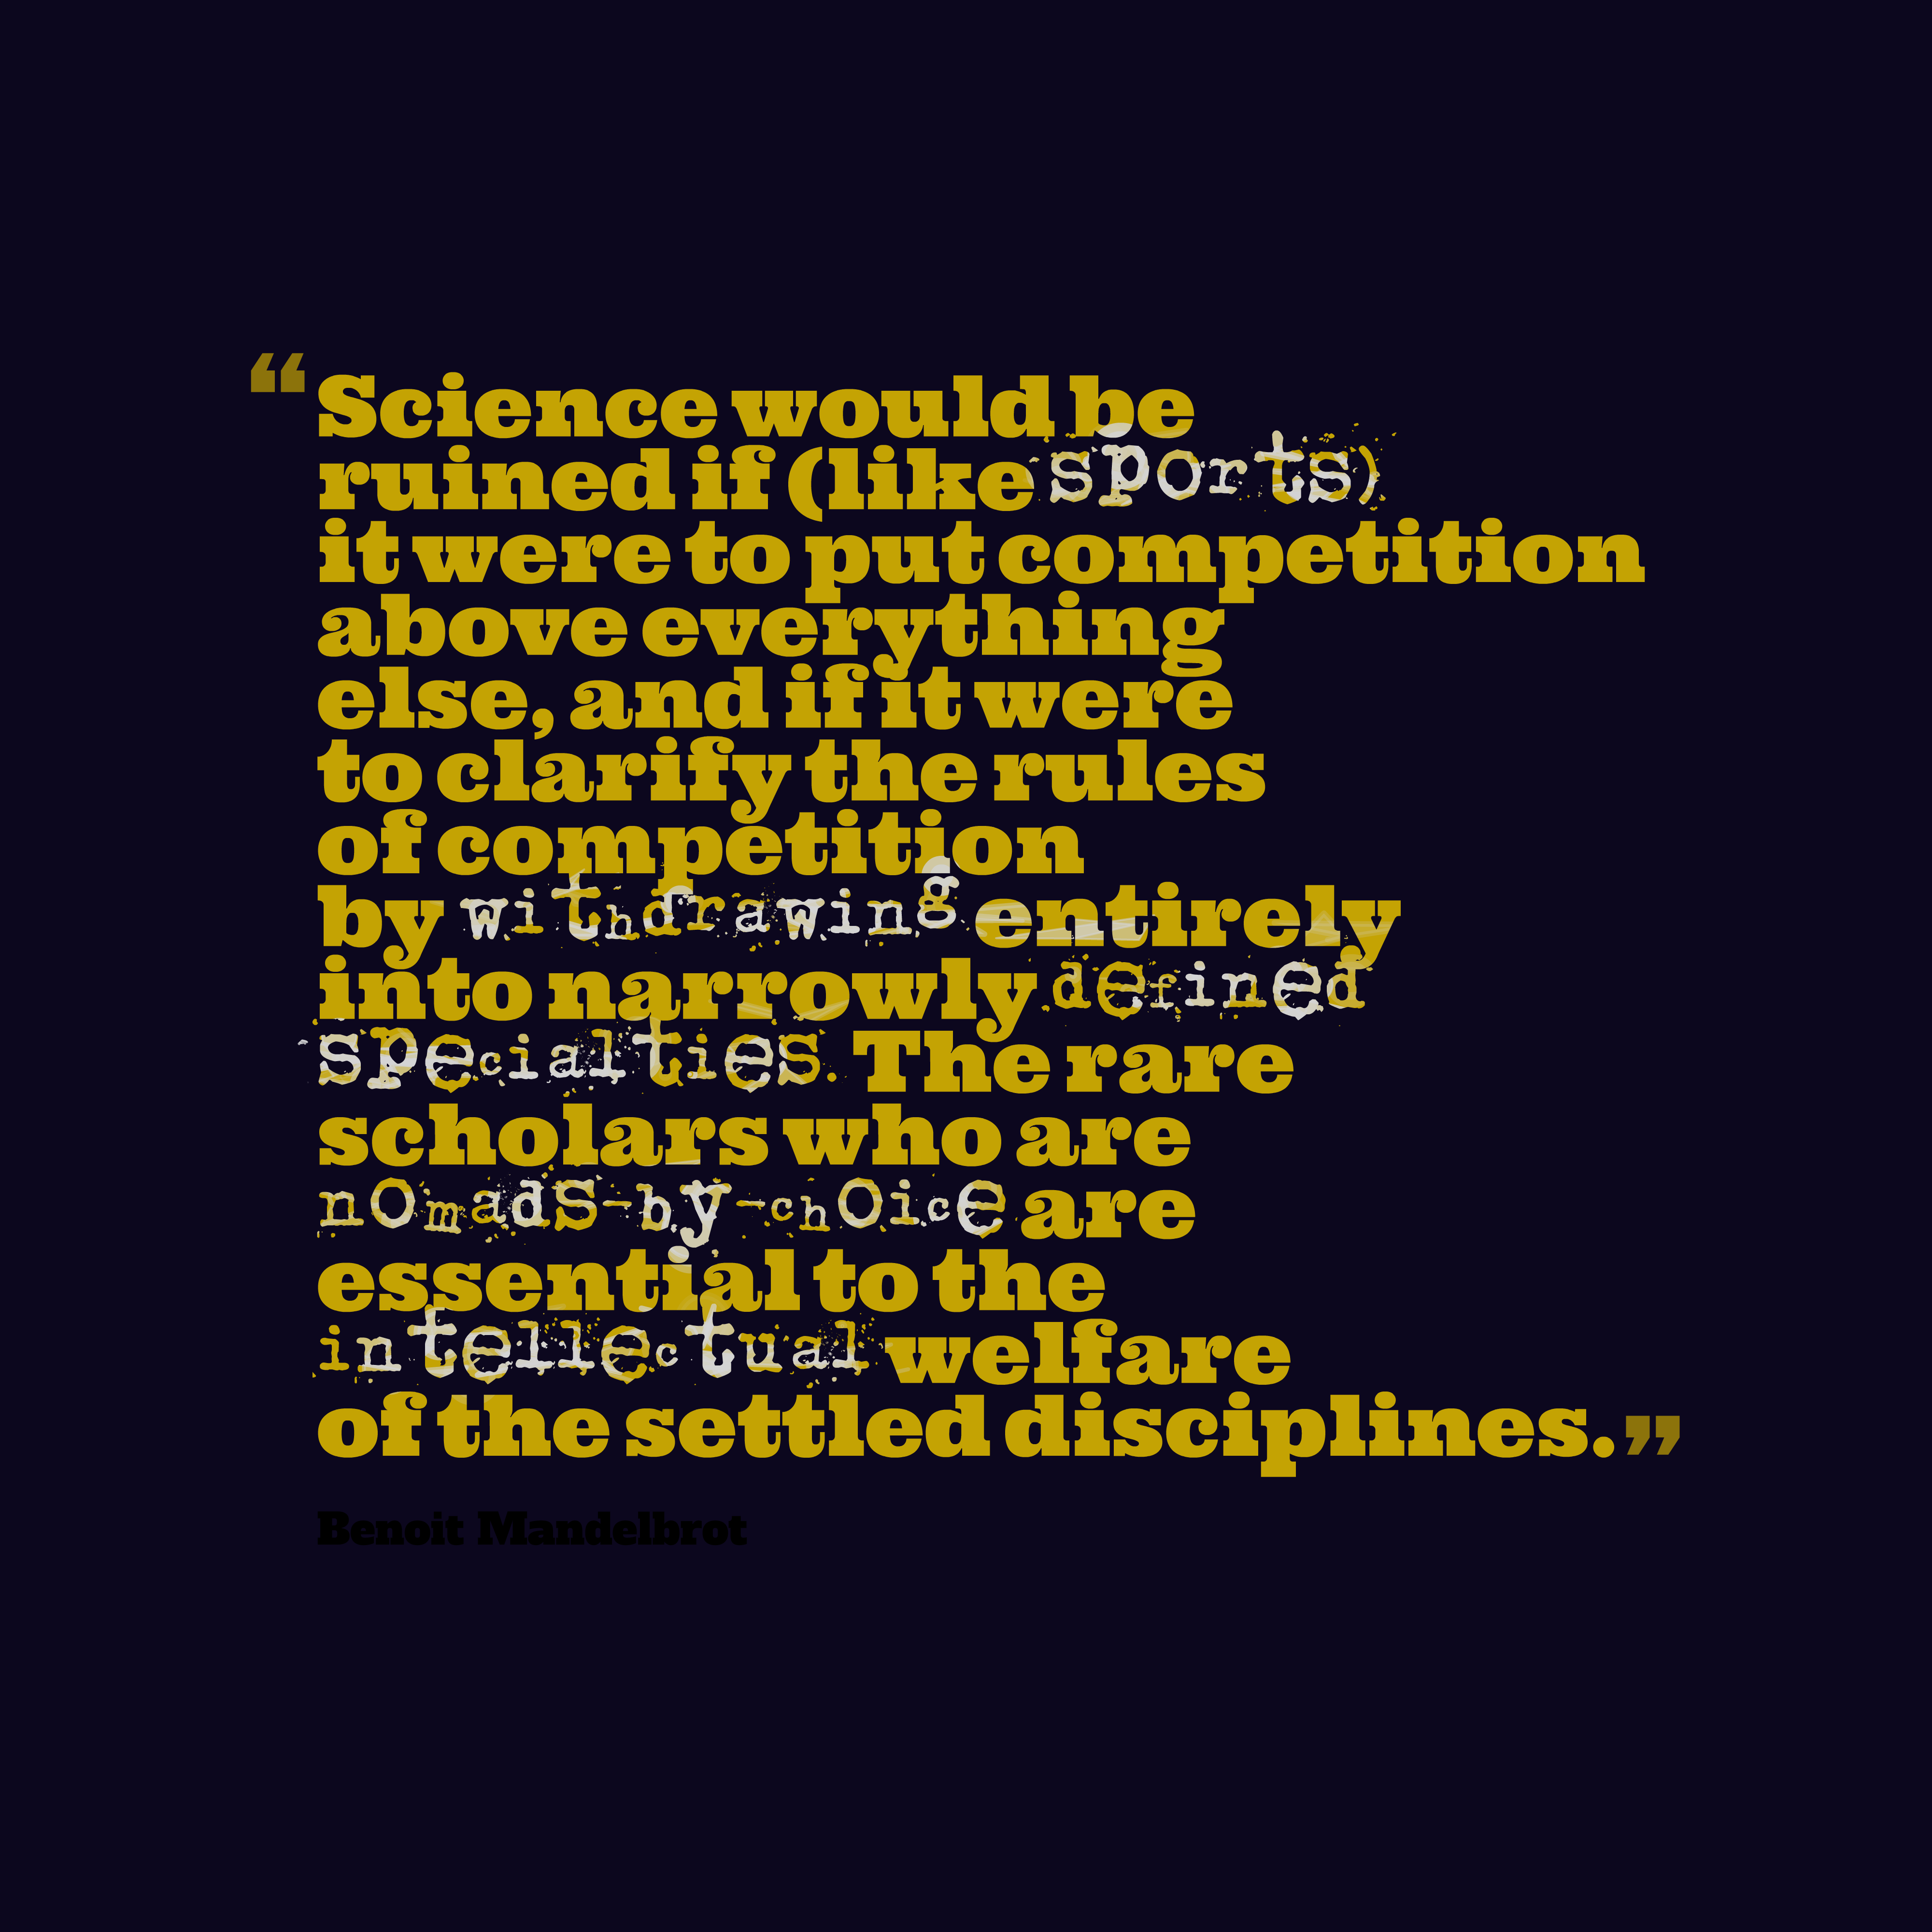 Quotes image of Science would be ruined if (like sports) it were to put competition above everything else, and if it were to clarify the rules of competition by withdrawing entirely into narrowly defined specialties. The rare scholars who are nomads-by-choice are essential to the intellectual welfare of the settled disciplines.